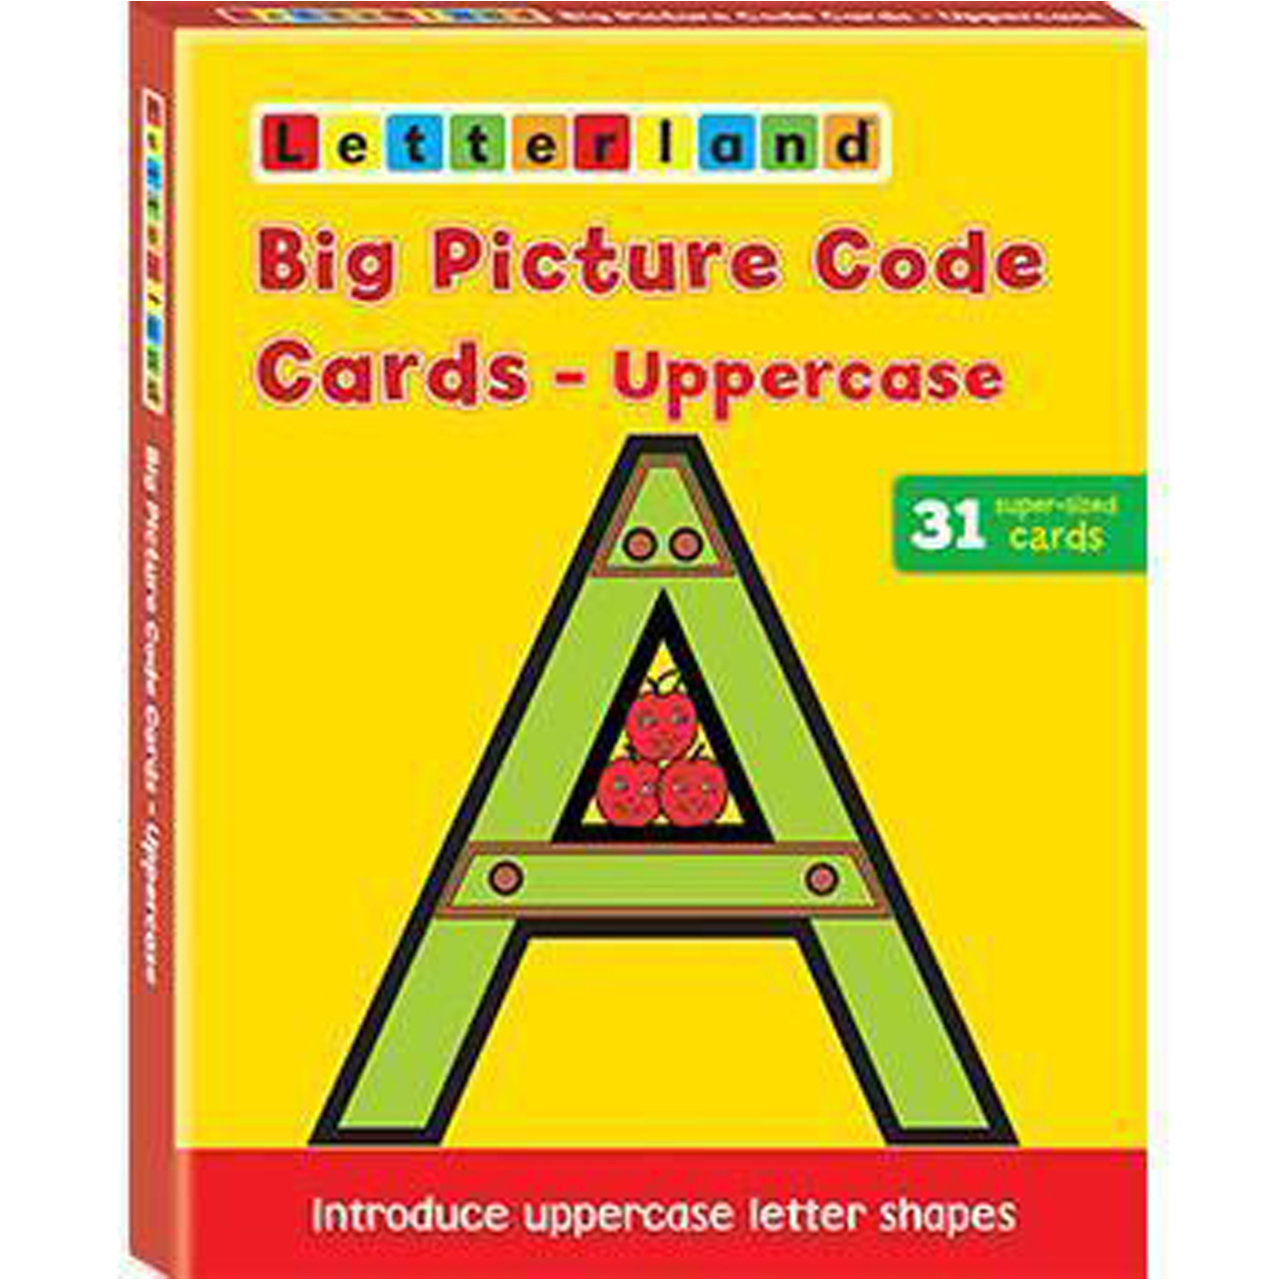 Big Picture Code Cards - Uppercase